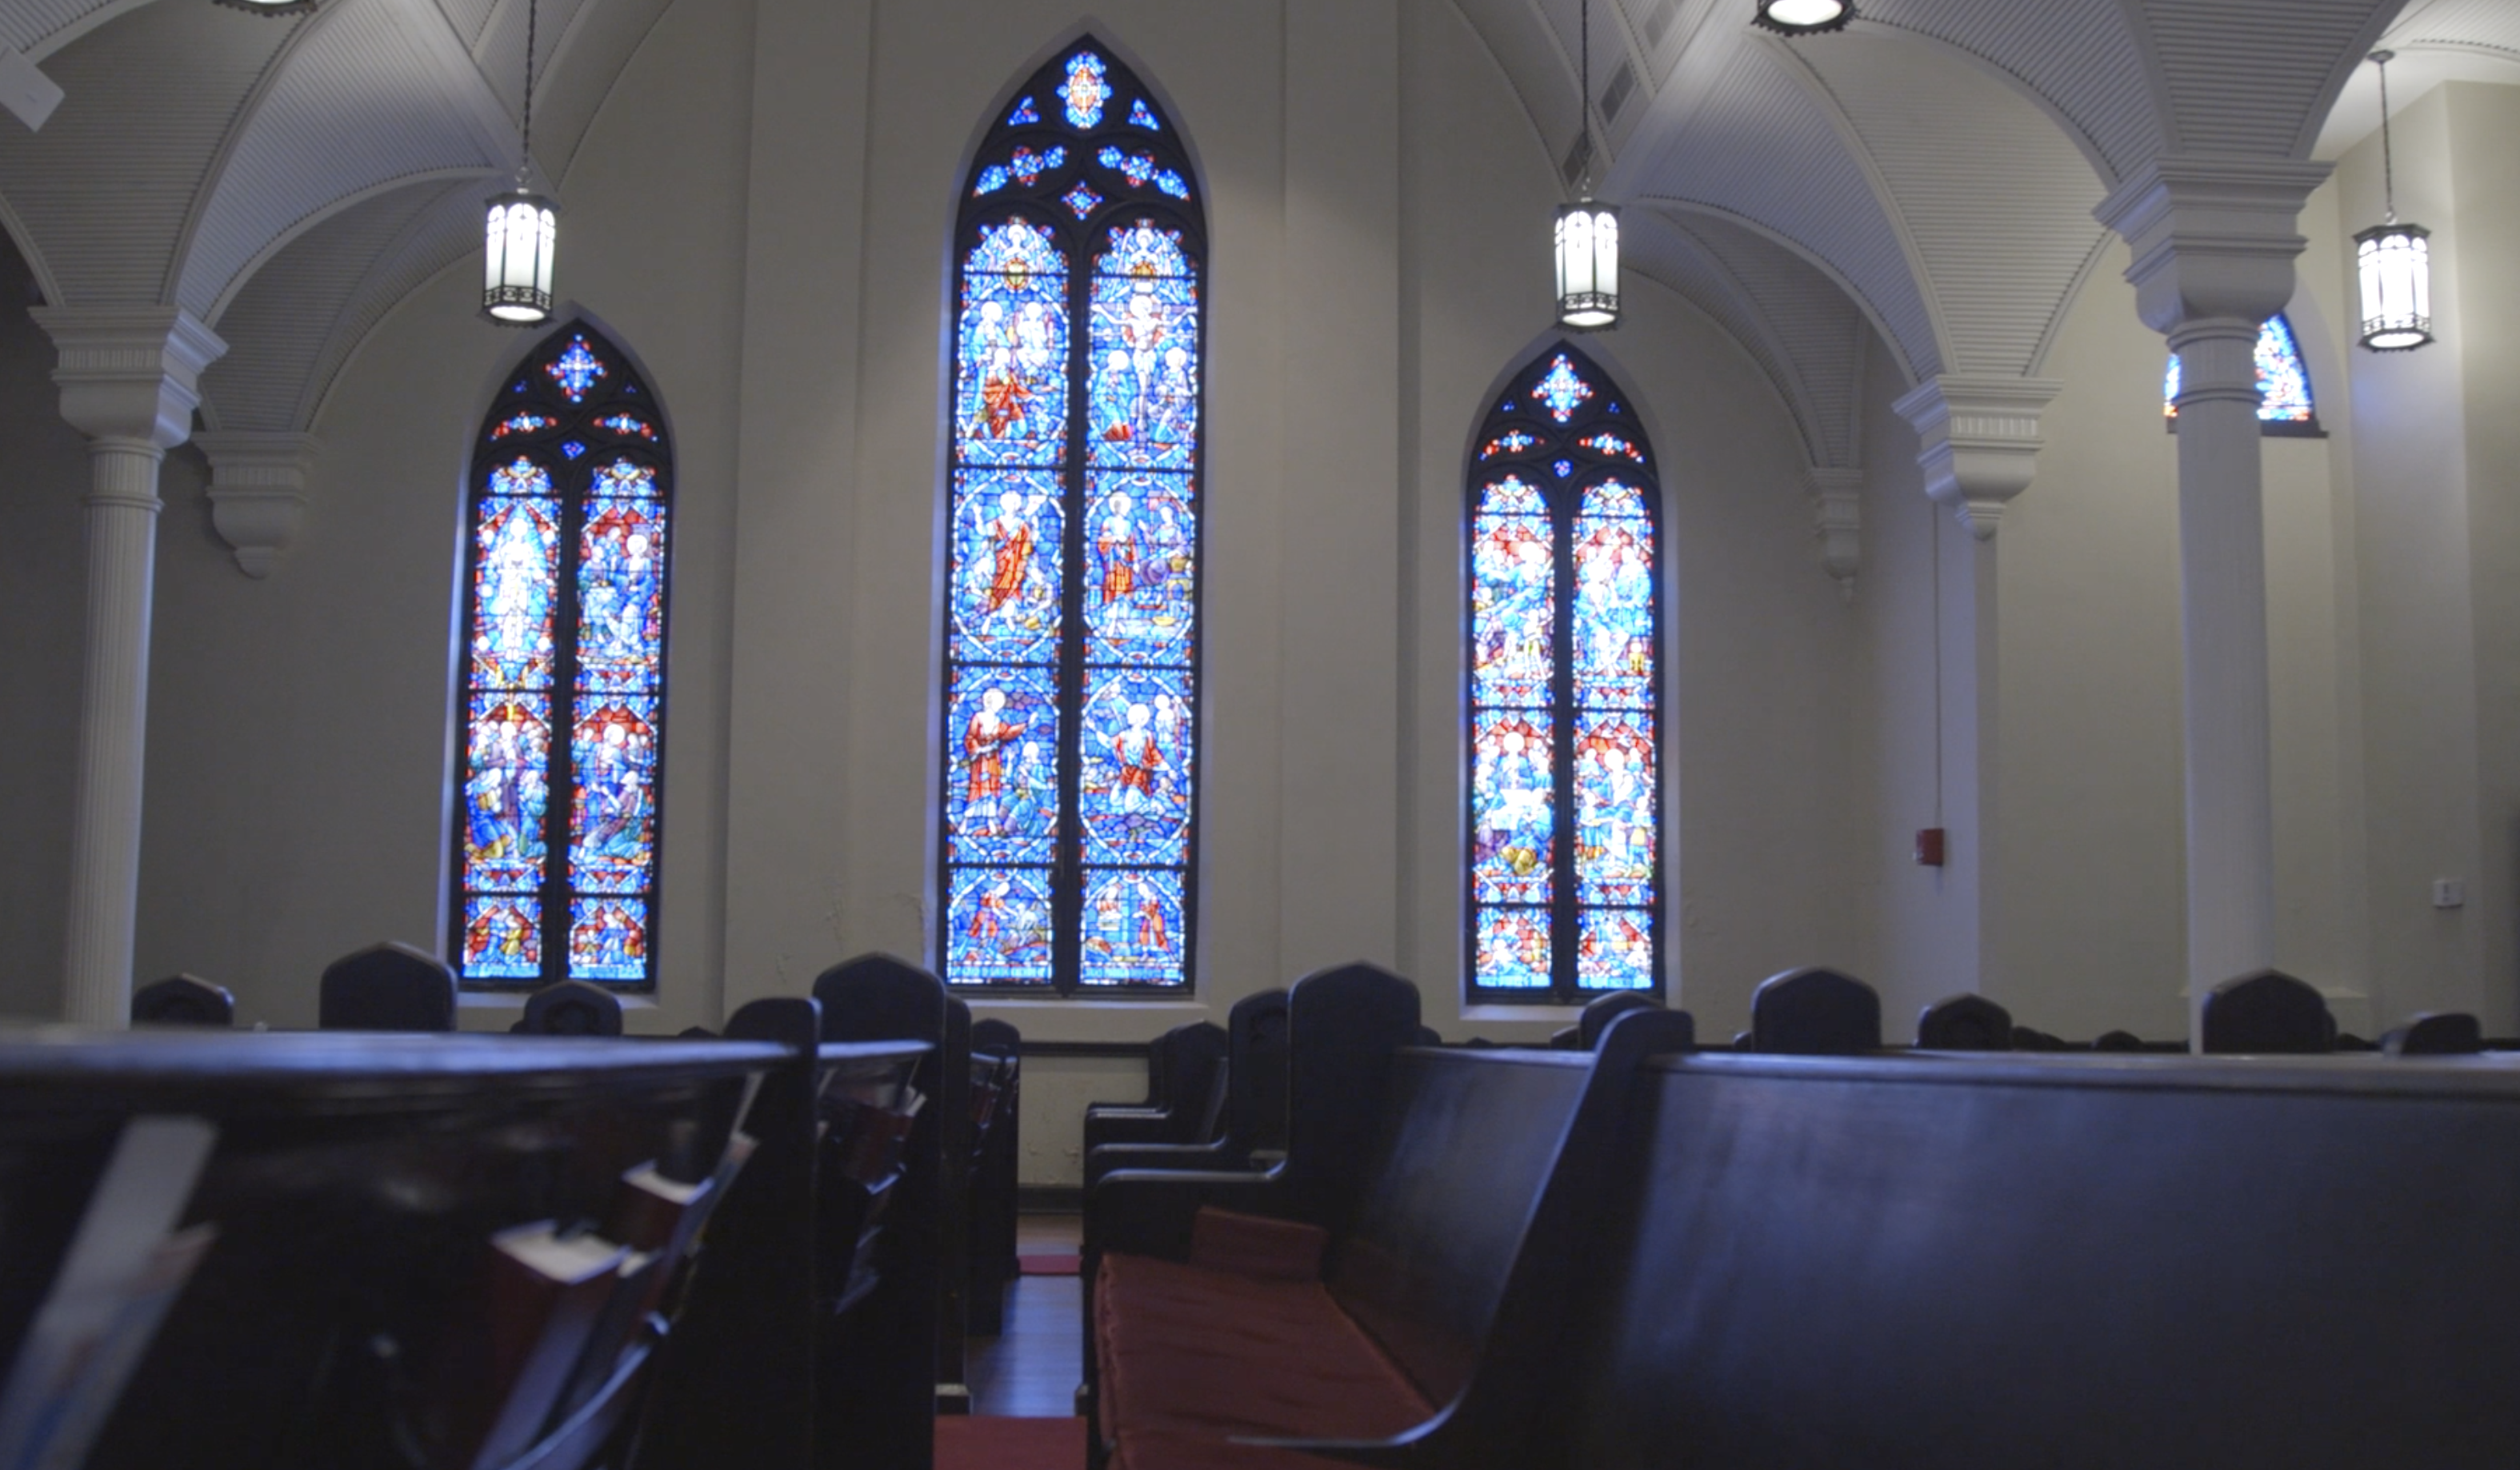 Indoor Religious Services Will Resume In June Until Then Hundreds Of N J Churches Are Streaming Virtual Services Nj Com